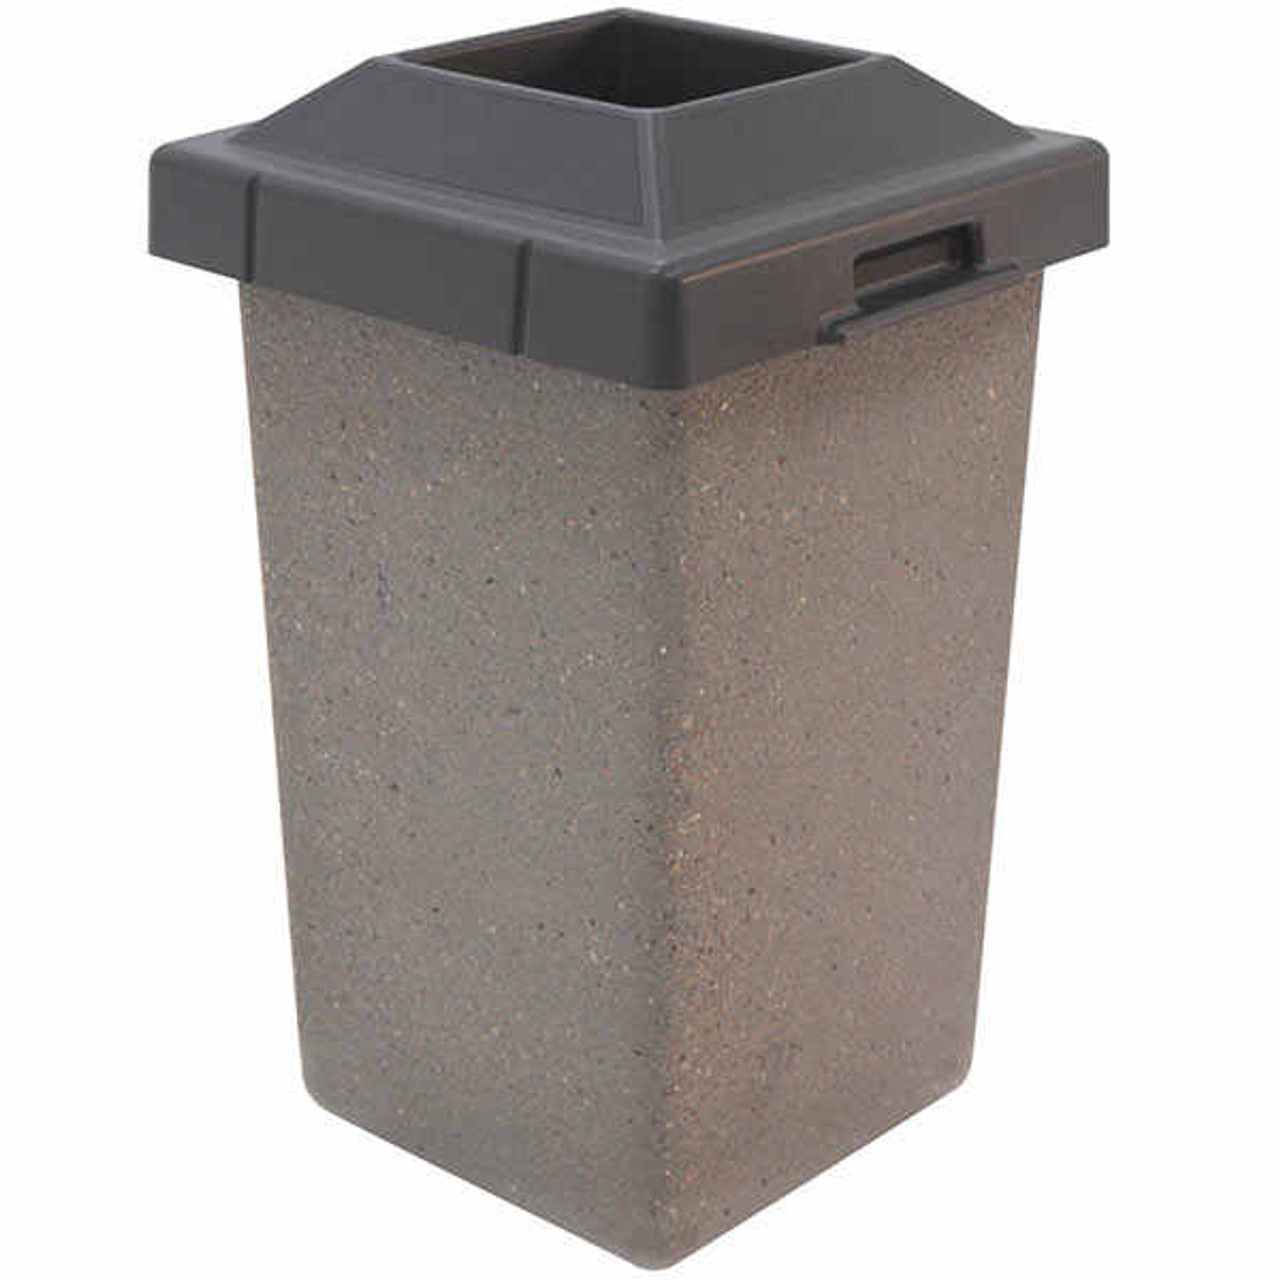 30 Gallon Concrete Pitch In Top Outdoor Waste Container TF1010 Weatherstone